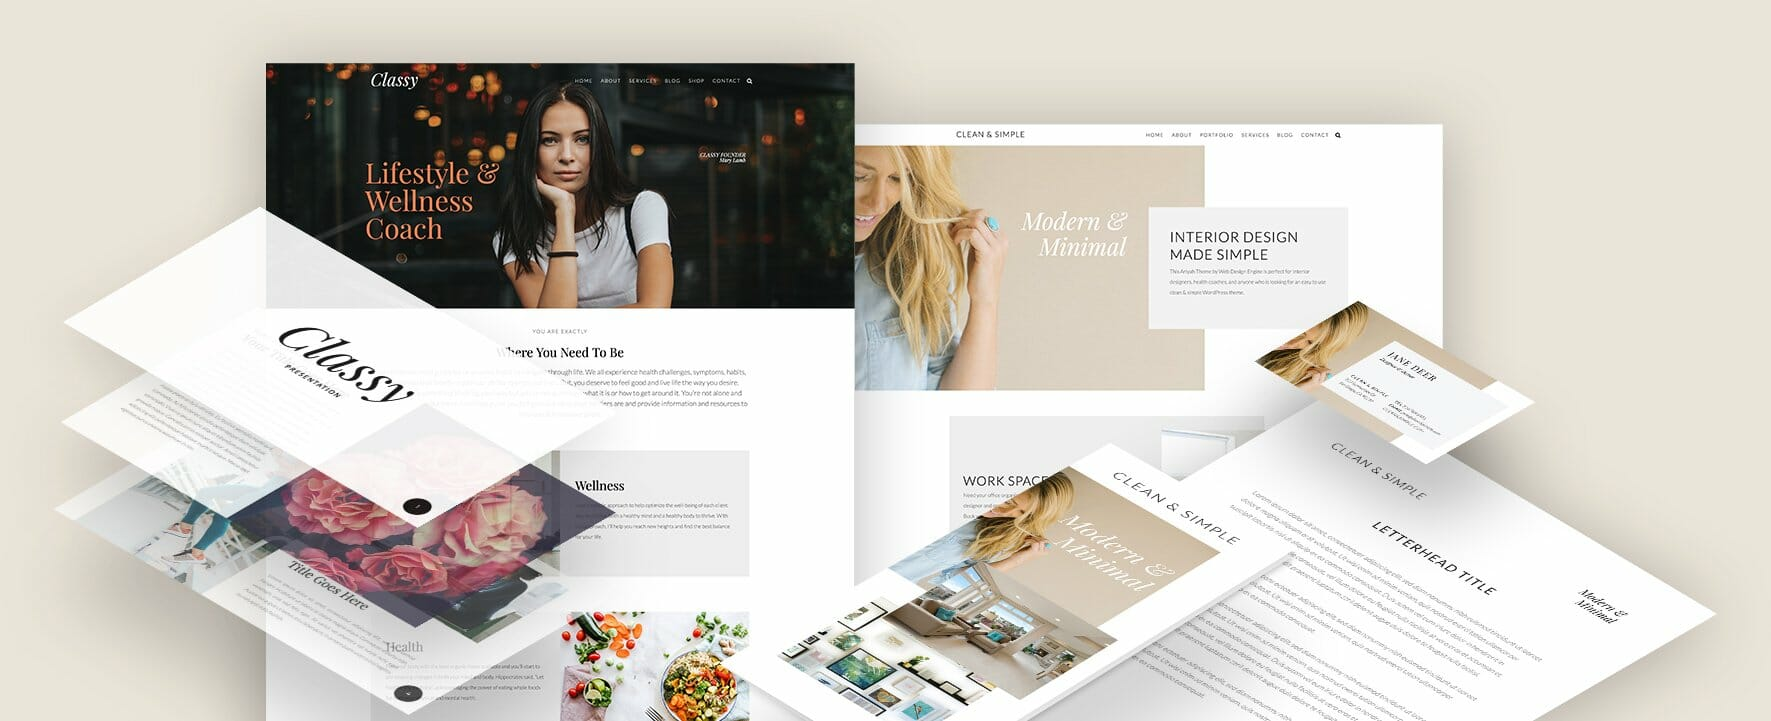 Ariyah WordPress Theme and Marketing Essentials for Health Coaches and Wellness Business